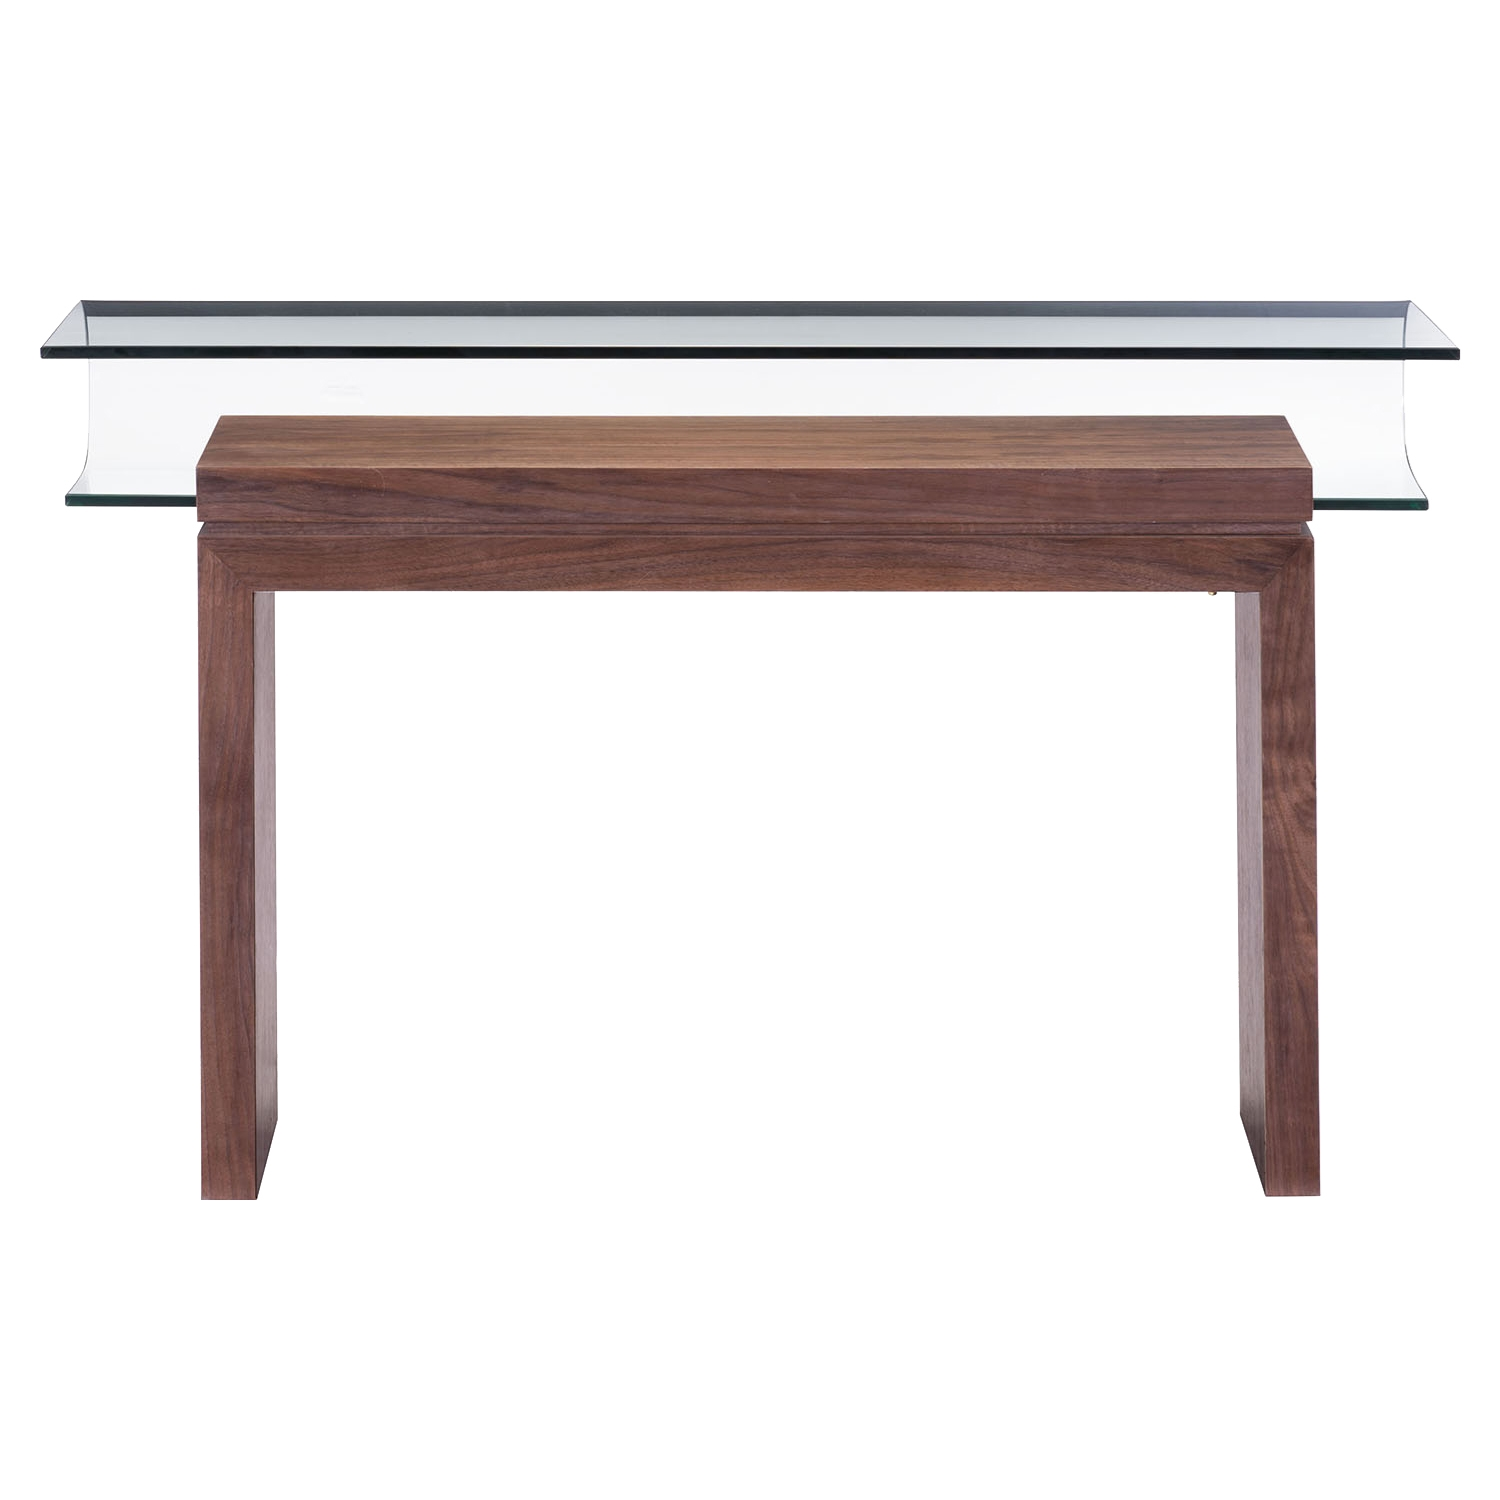 Mystic Walnut Console Table - ZM-404064